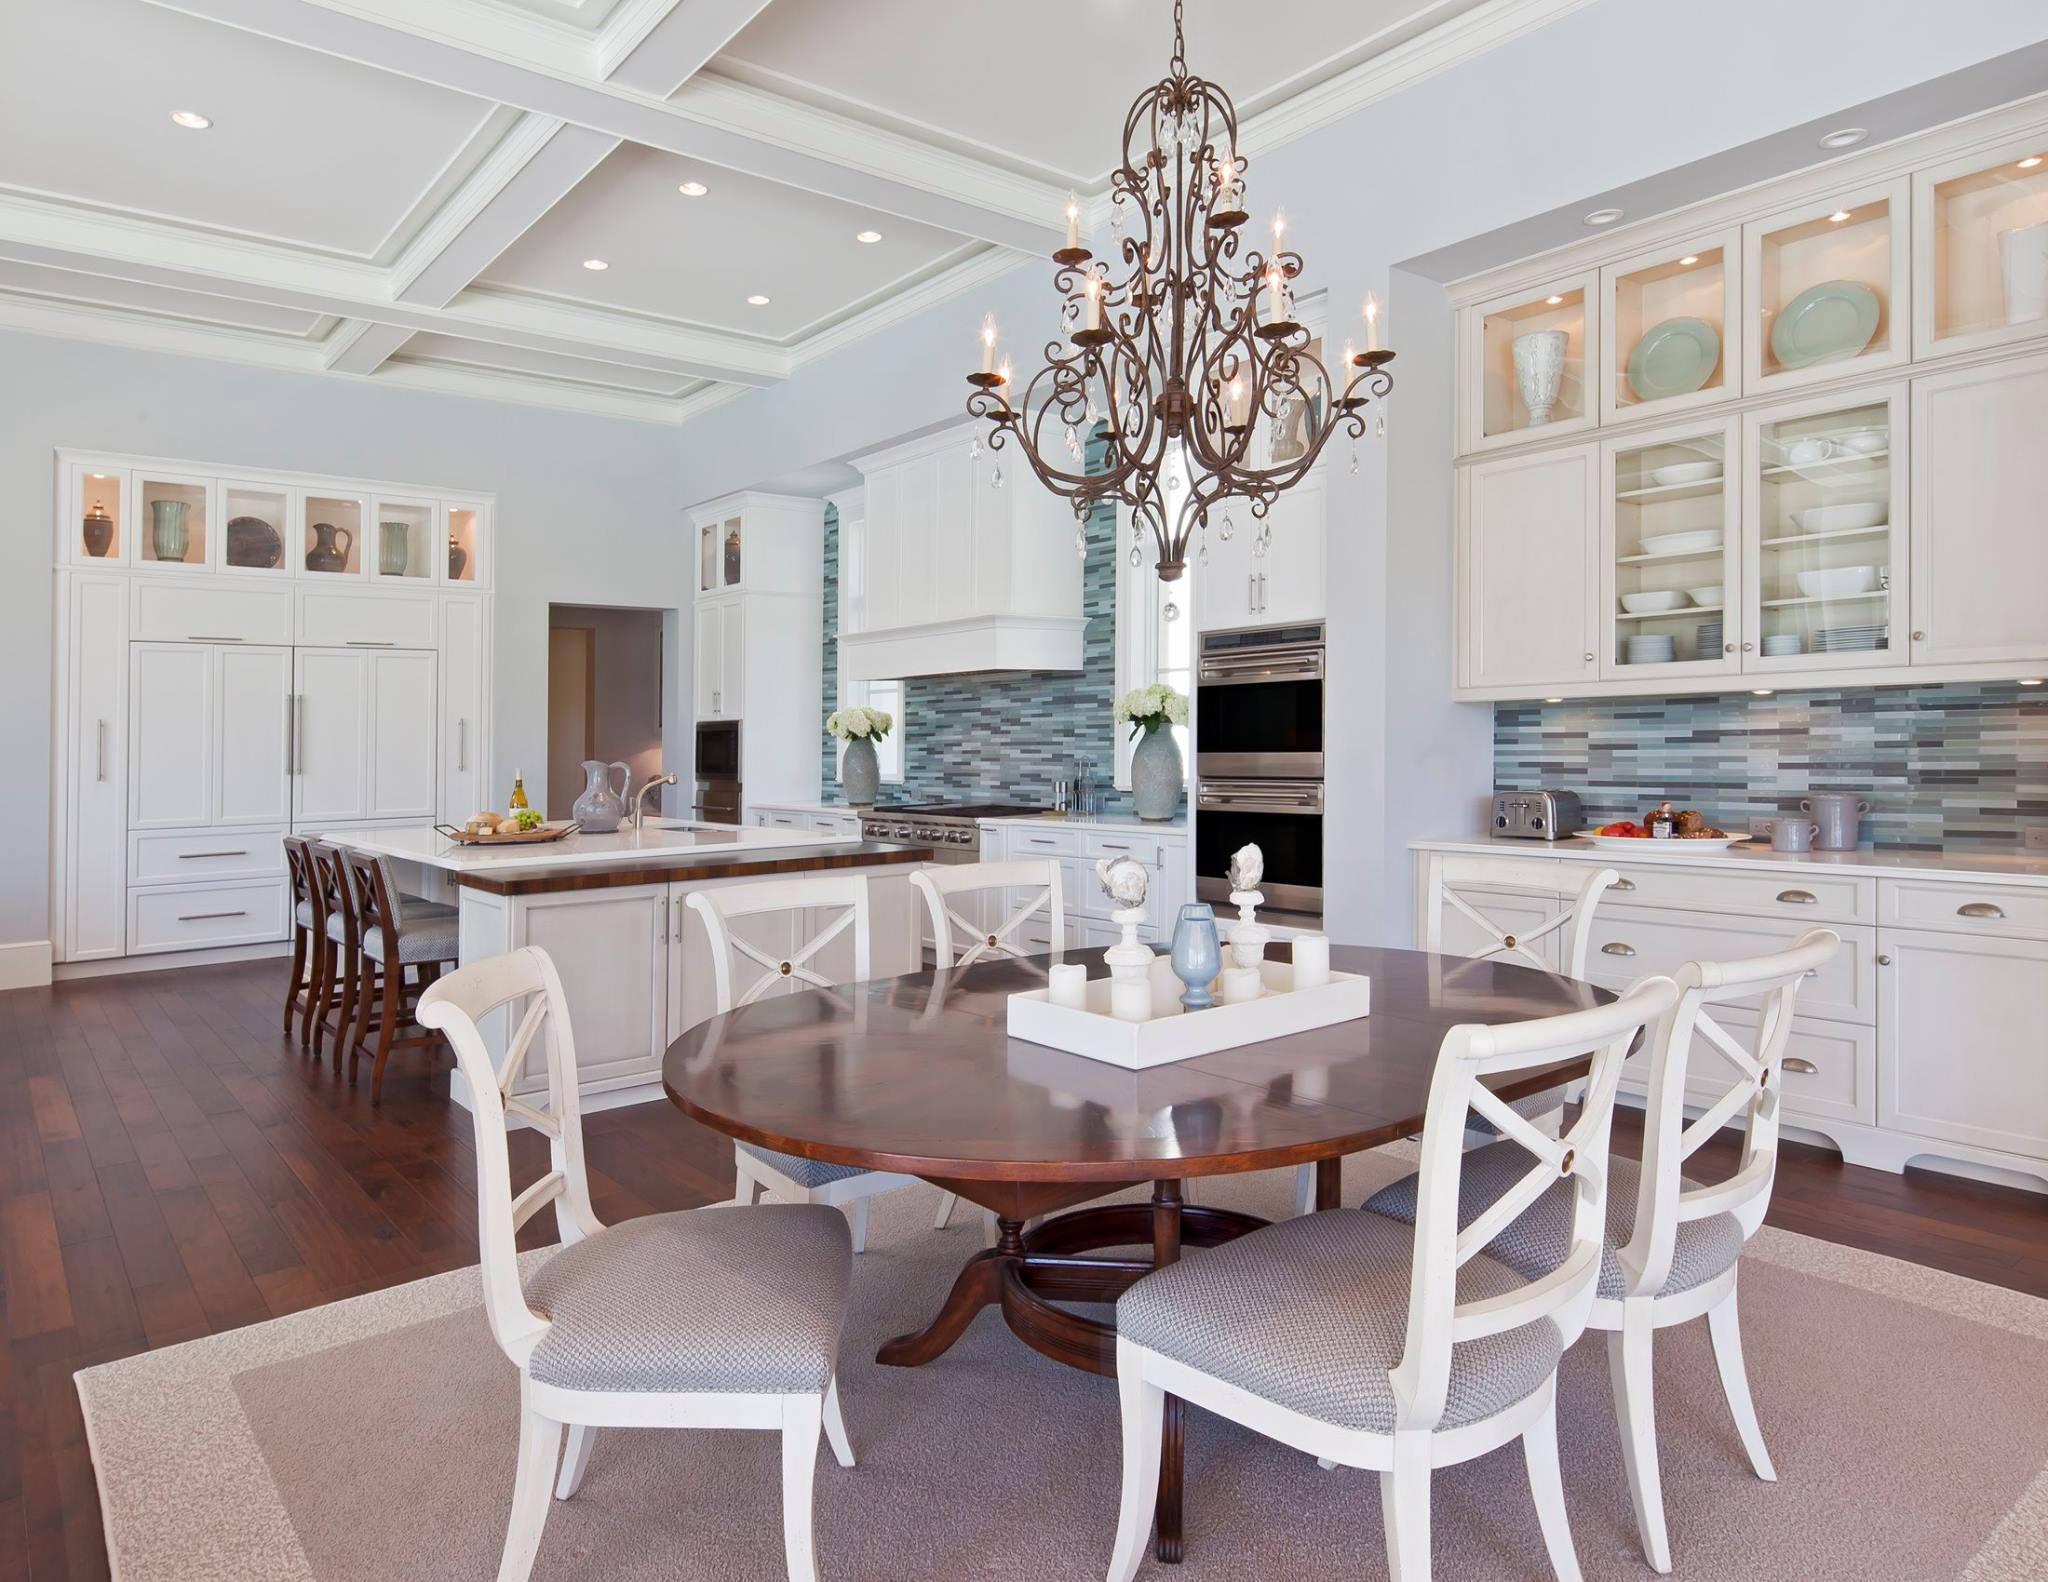 Collins & Dupont Design Group kitchen in waterfront community estate. design by:collins